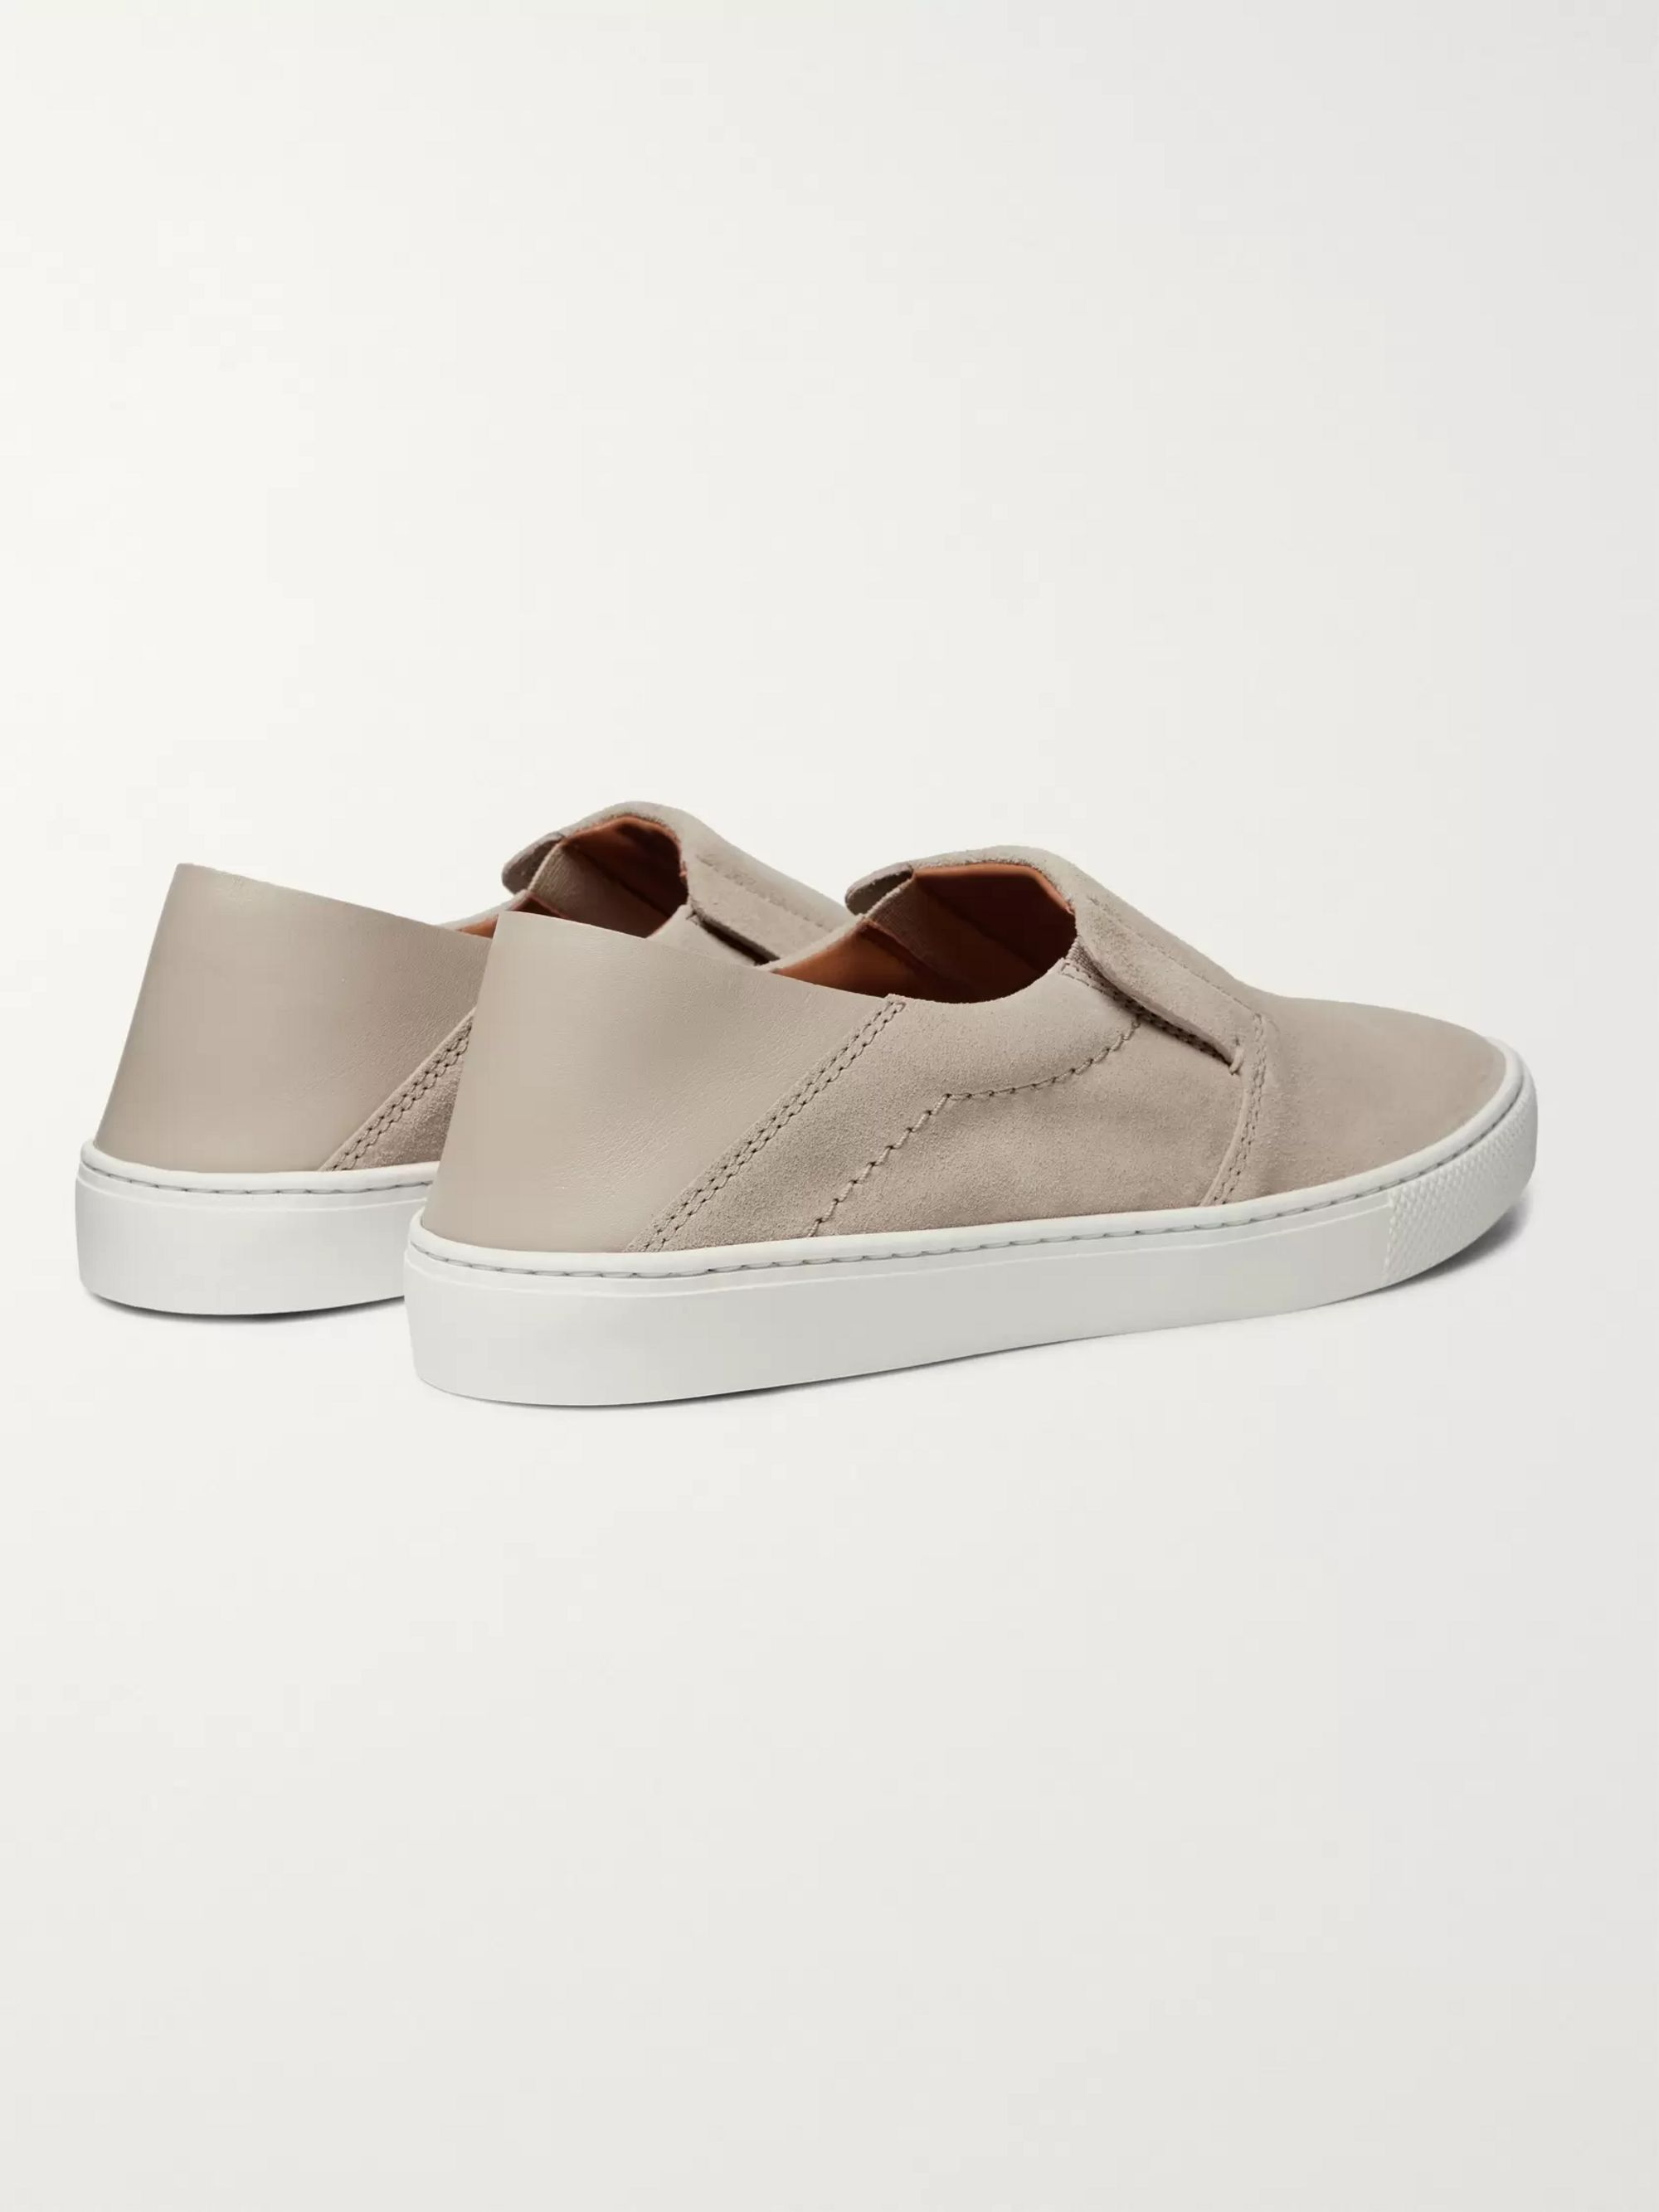 Ermenegildo Zegna Luigi Collapsible-Heel Suede and Leather Slip-On Sneakers